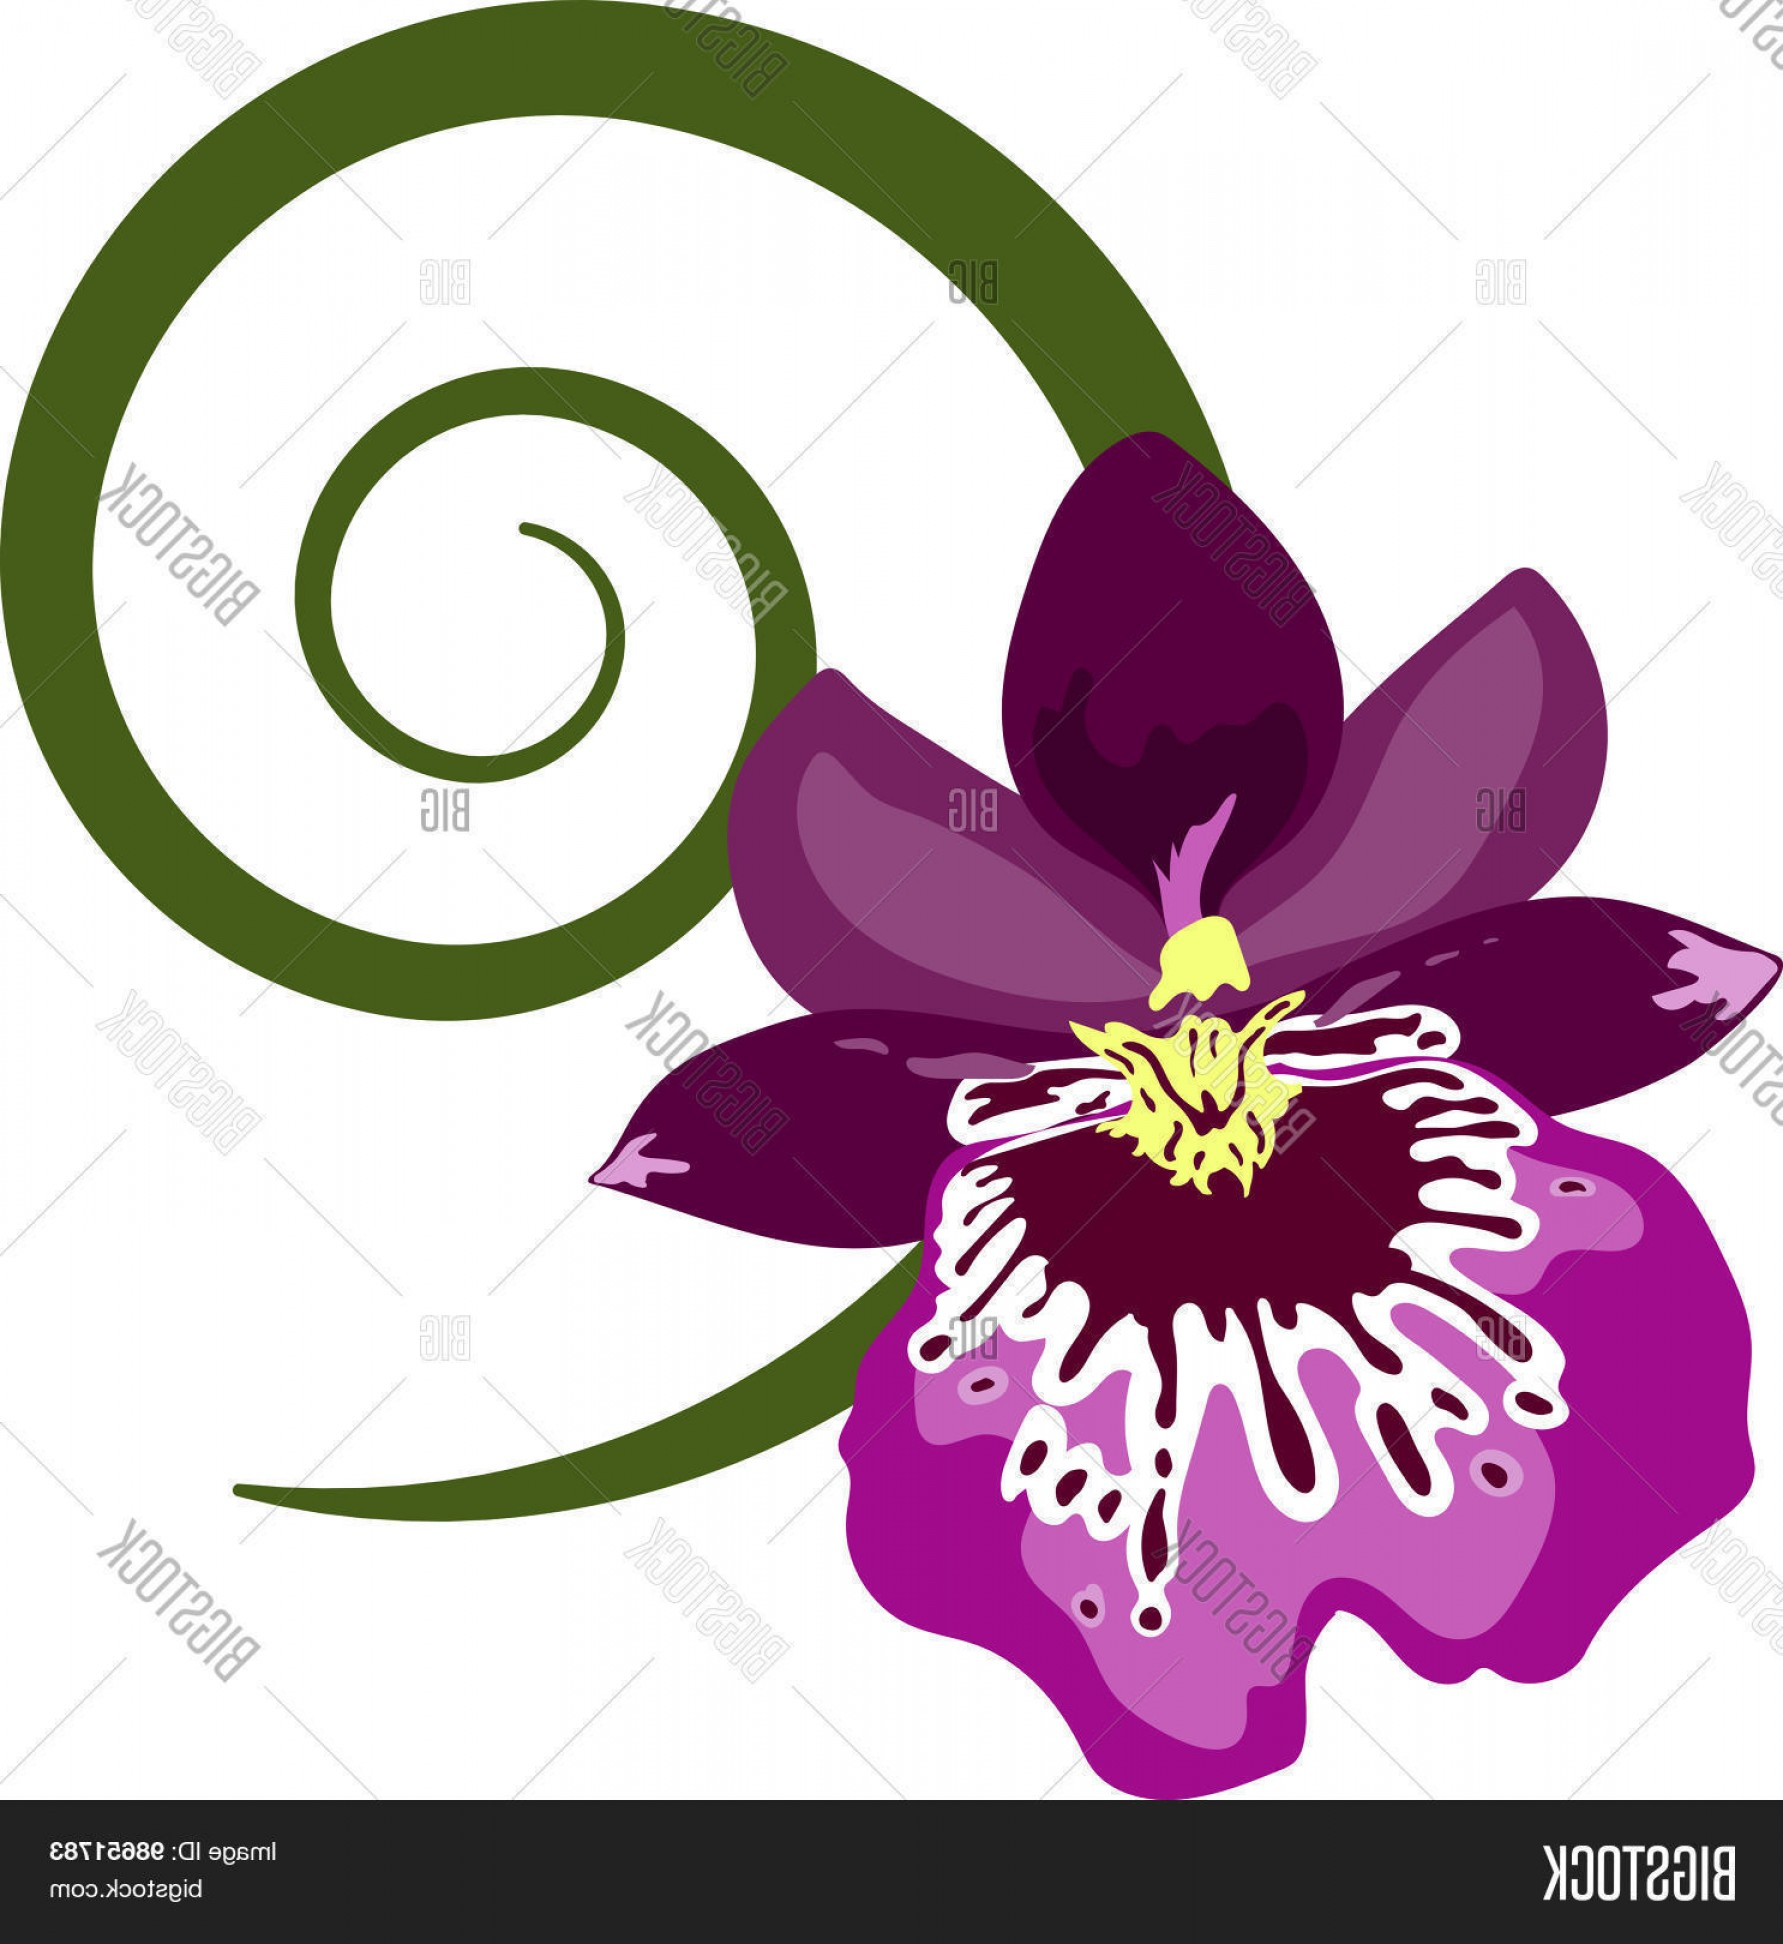 Purple Orchid Vector: Stock Vector Purple Orchid In Flat Style With Simple Green Spiral Sprout